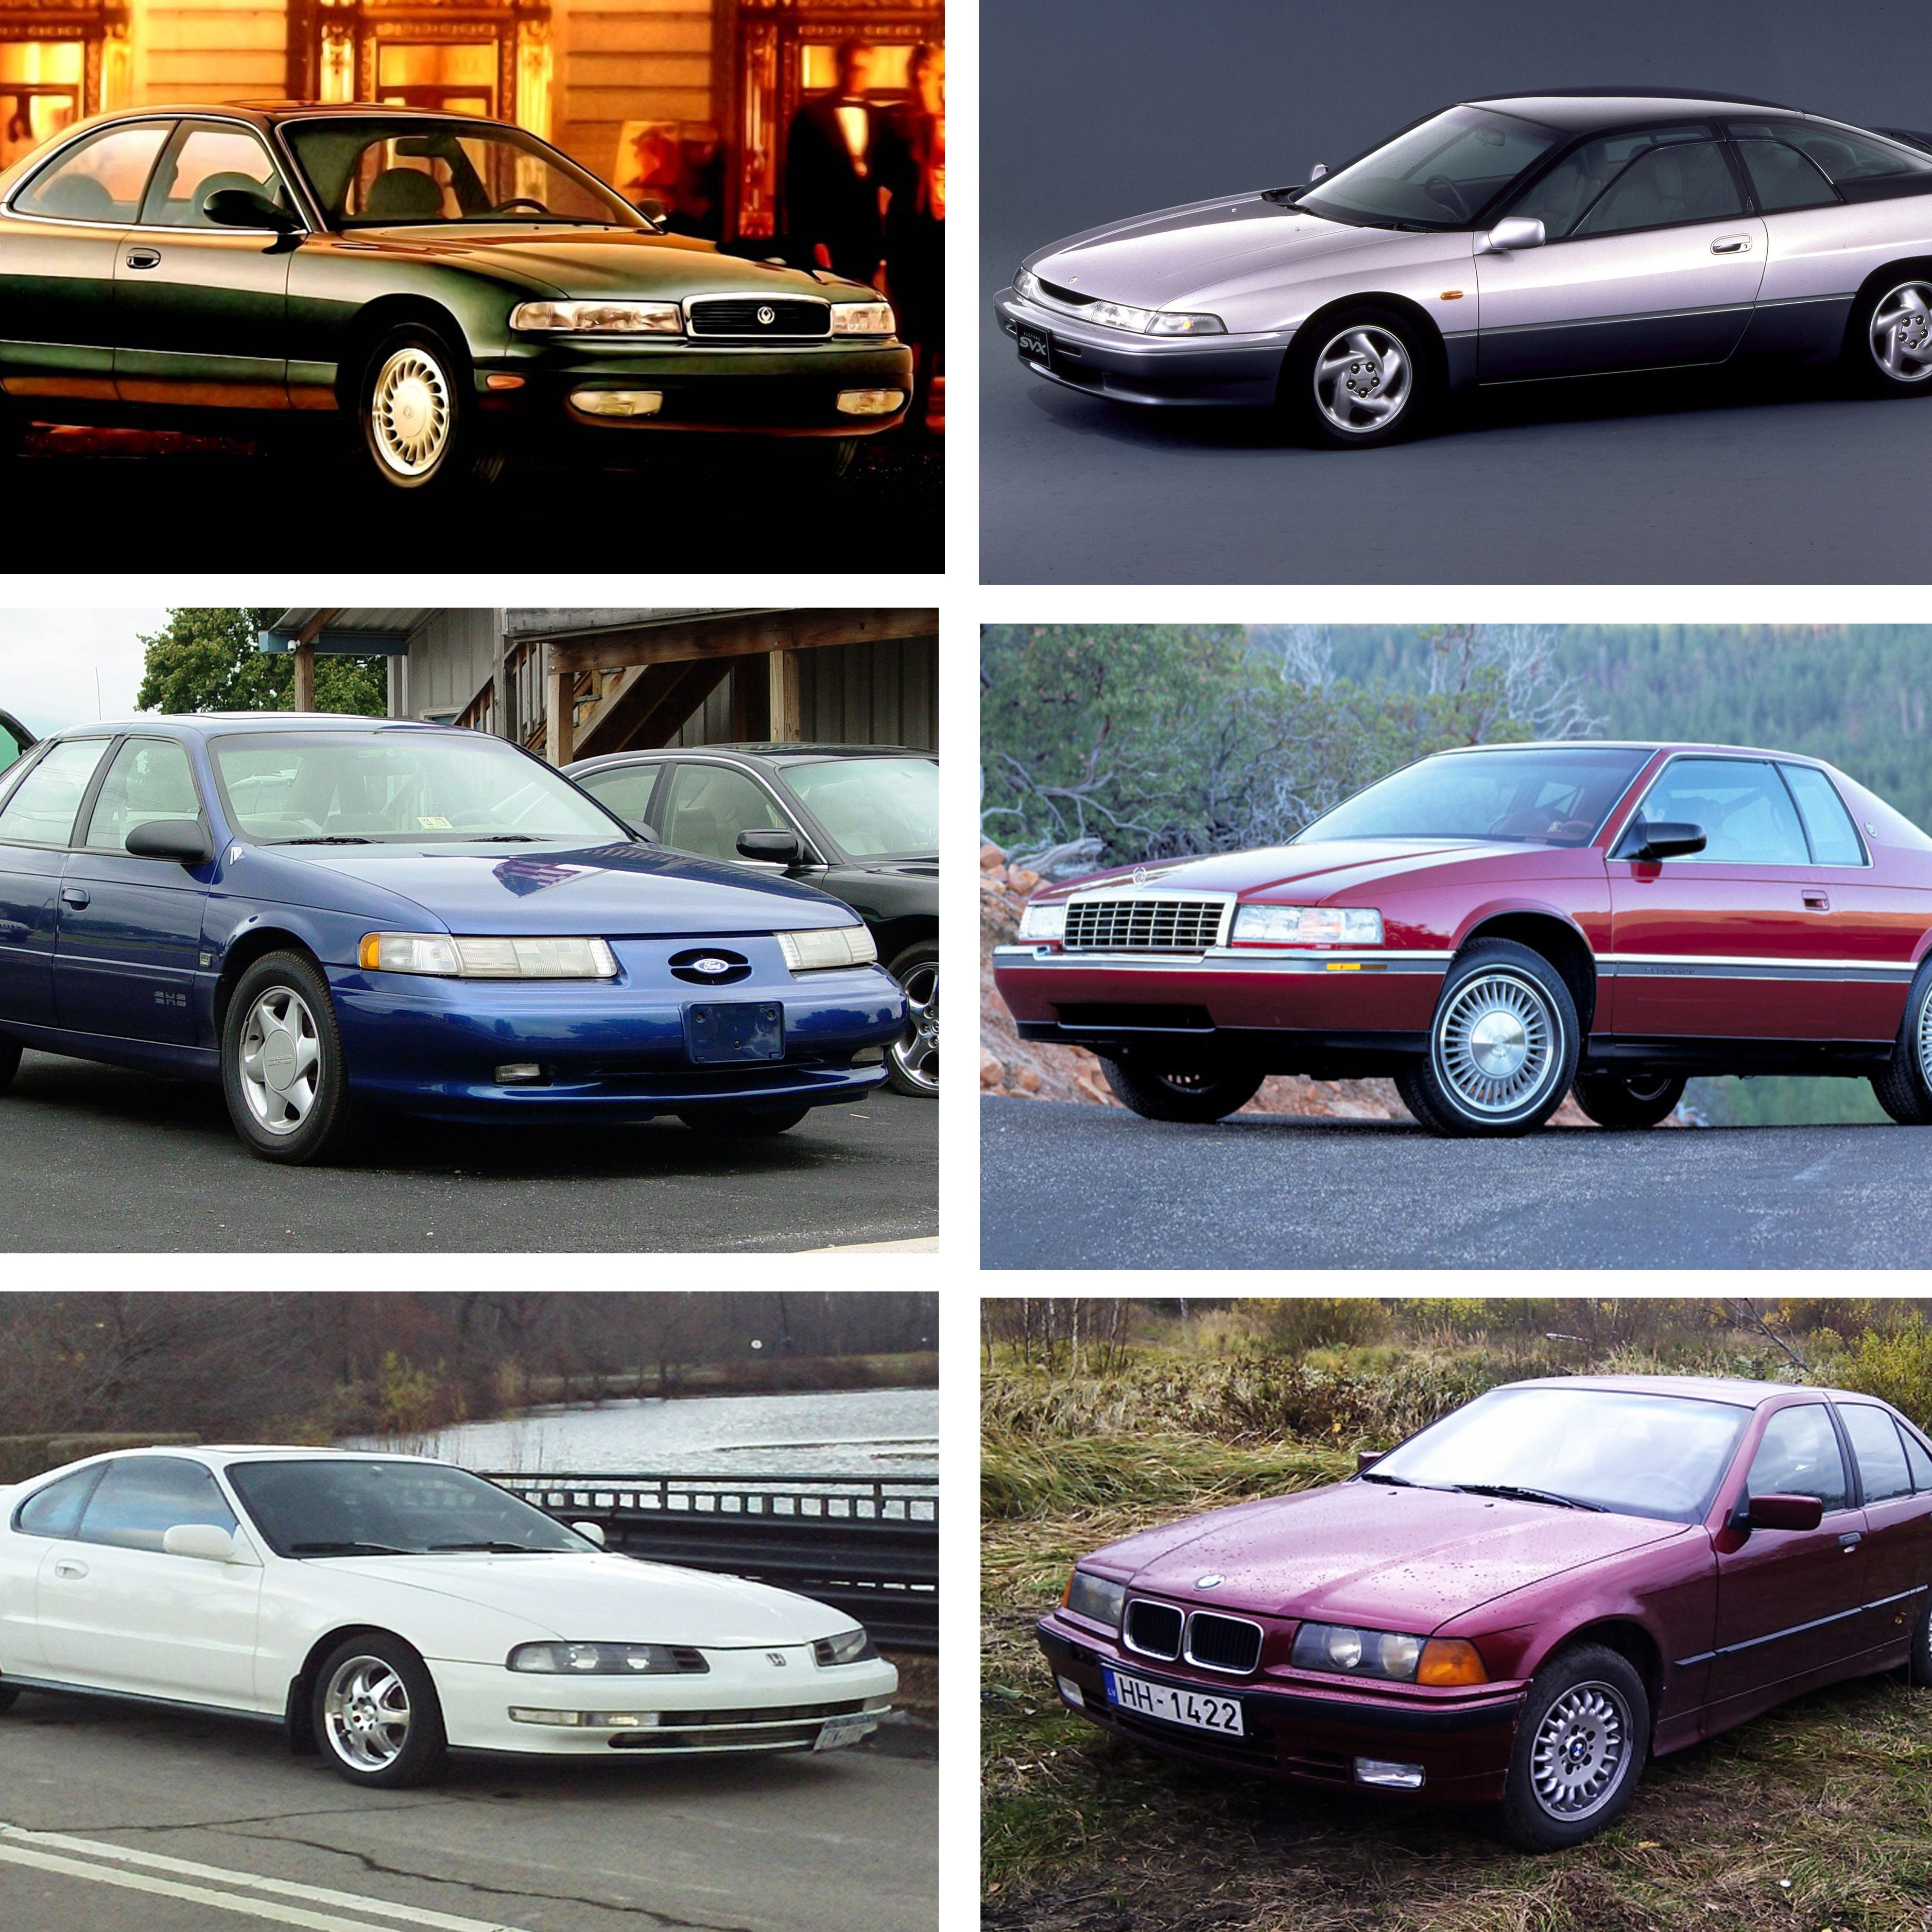 Meet the Dream Cruise Class of '92